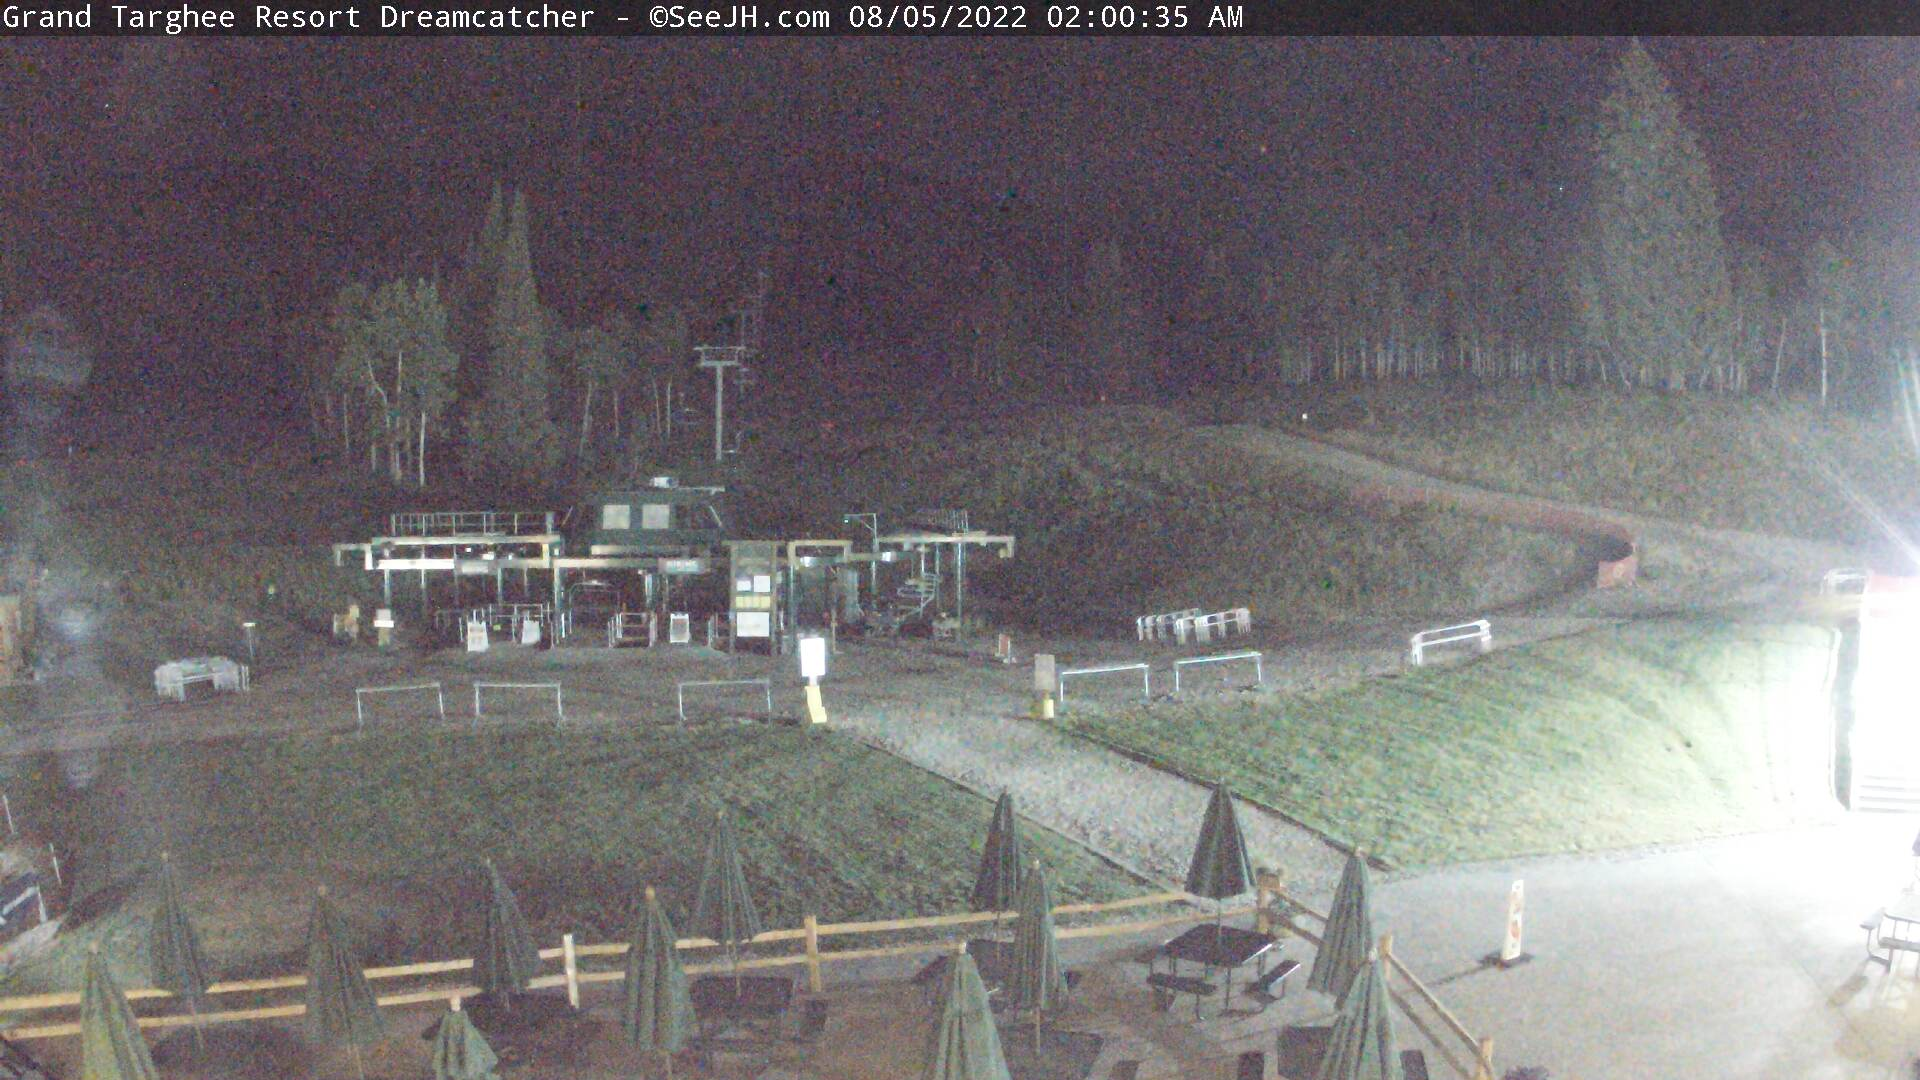 Grand Targhee Base Area Webcam